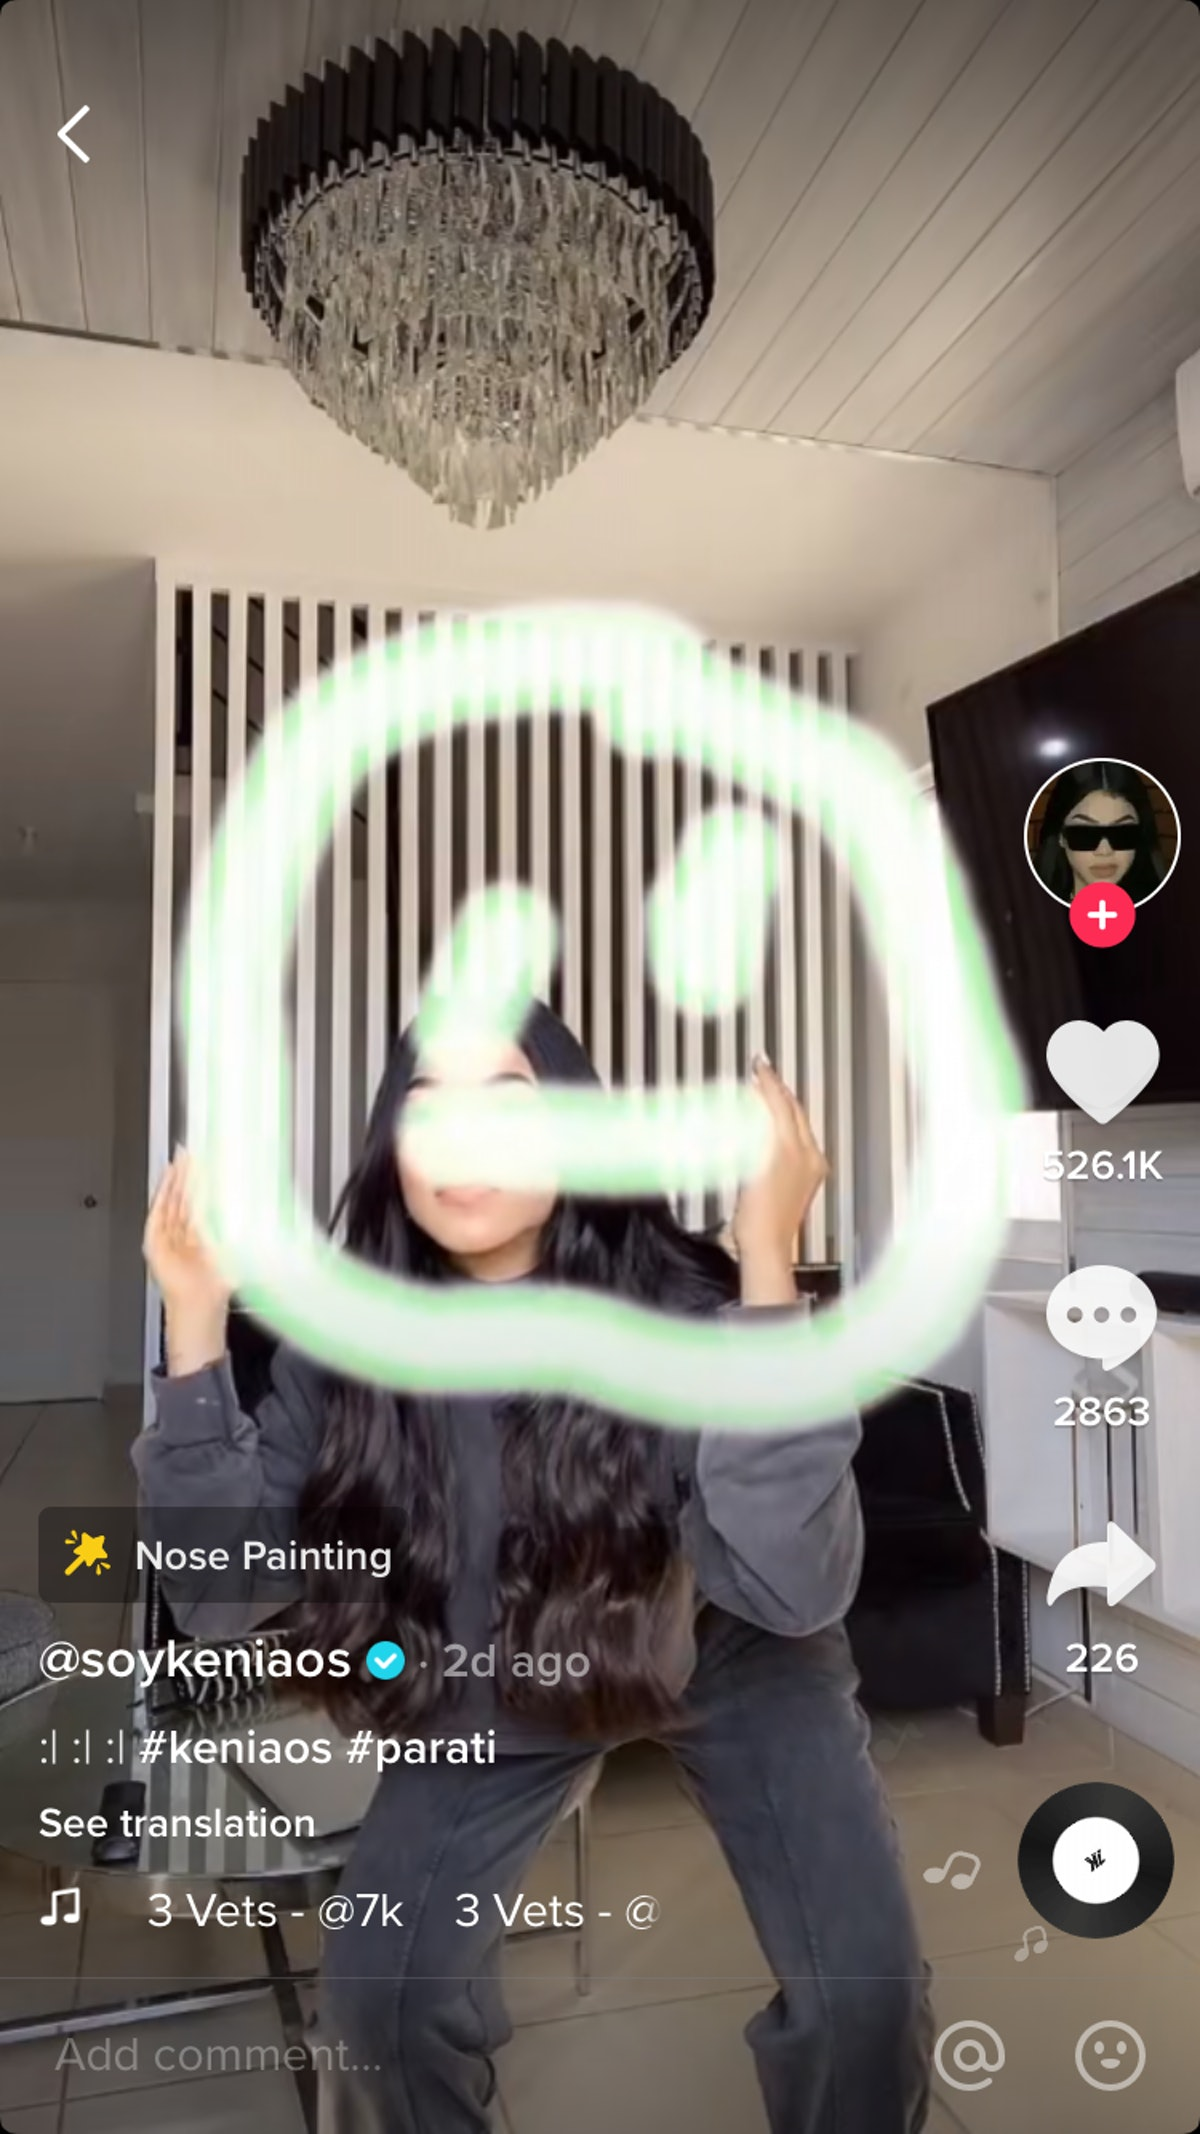 A woman draws a smiley face with her nose in her living room while doing a TikTok challenge.